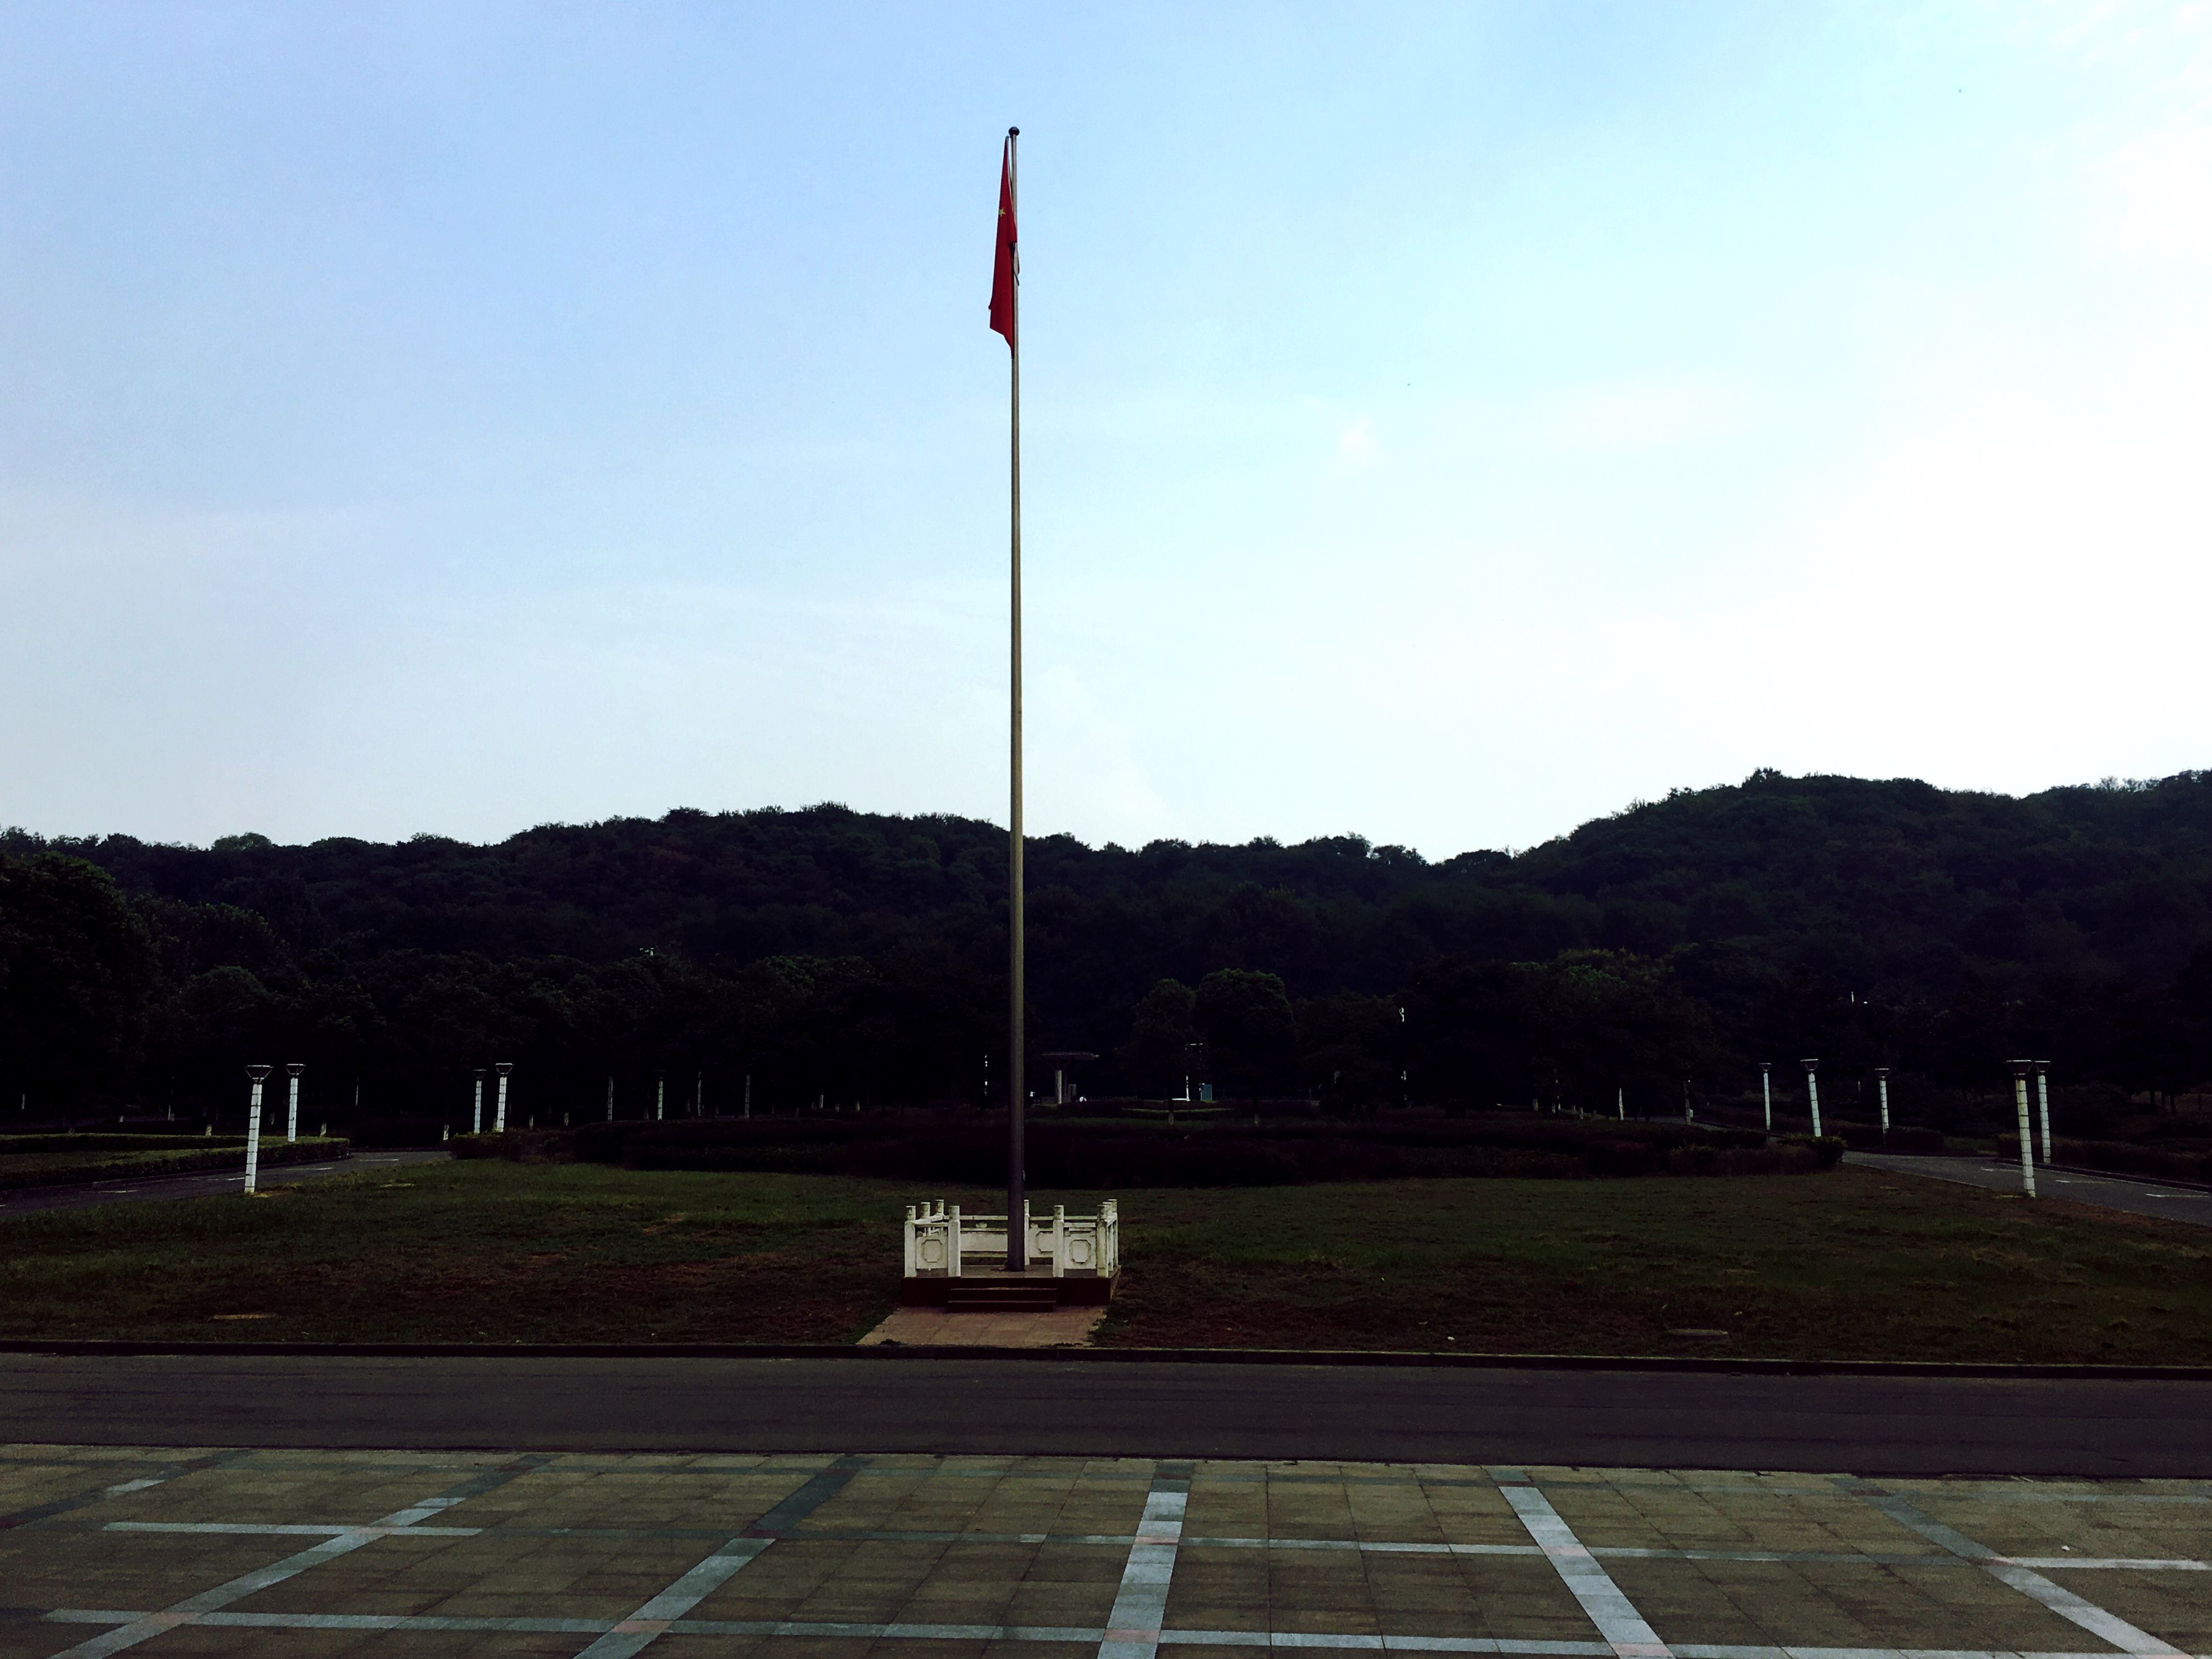 flag, tranquility, park - man made space, clear sky, pole, tranquil scene, national flag, identity, outdoors, scenics, sky, mountain, no people, non-urban scene, red, beauty in nature, hobbies, solitude